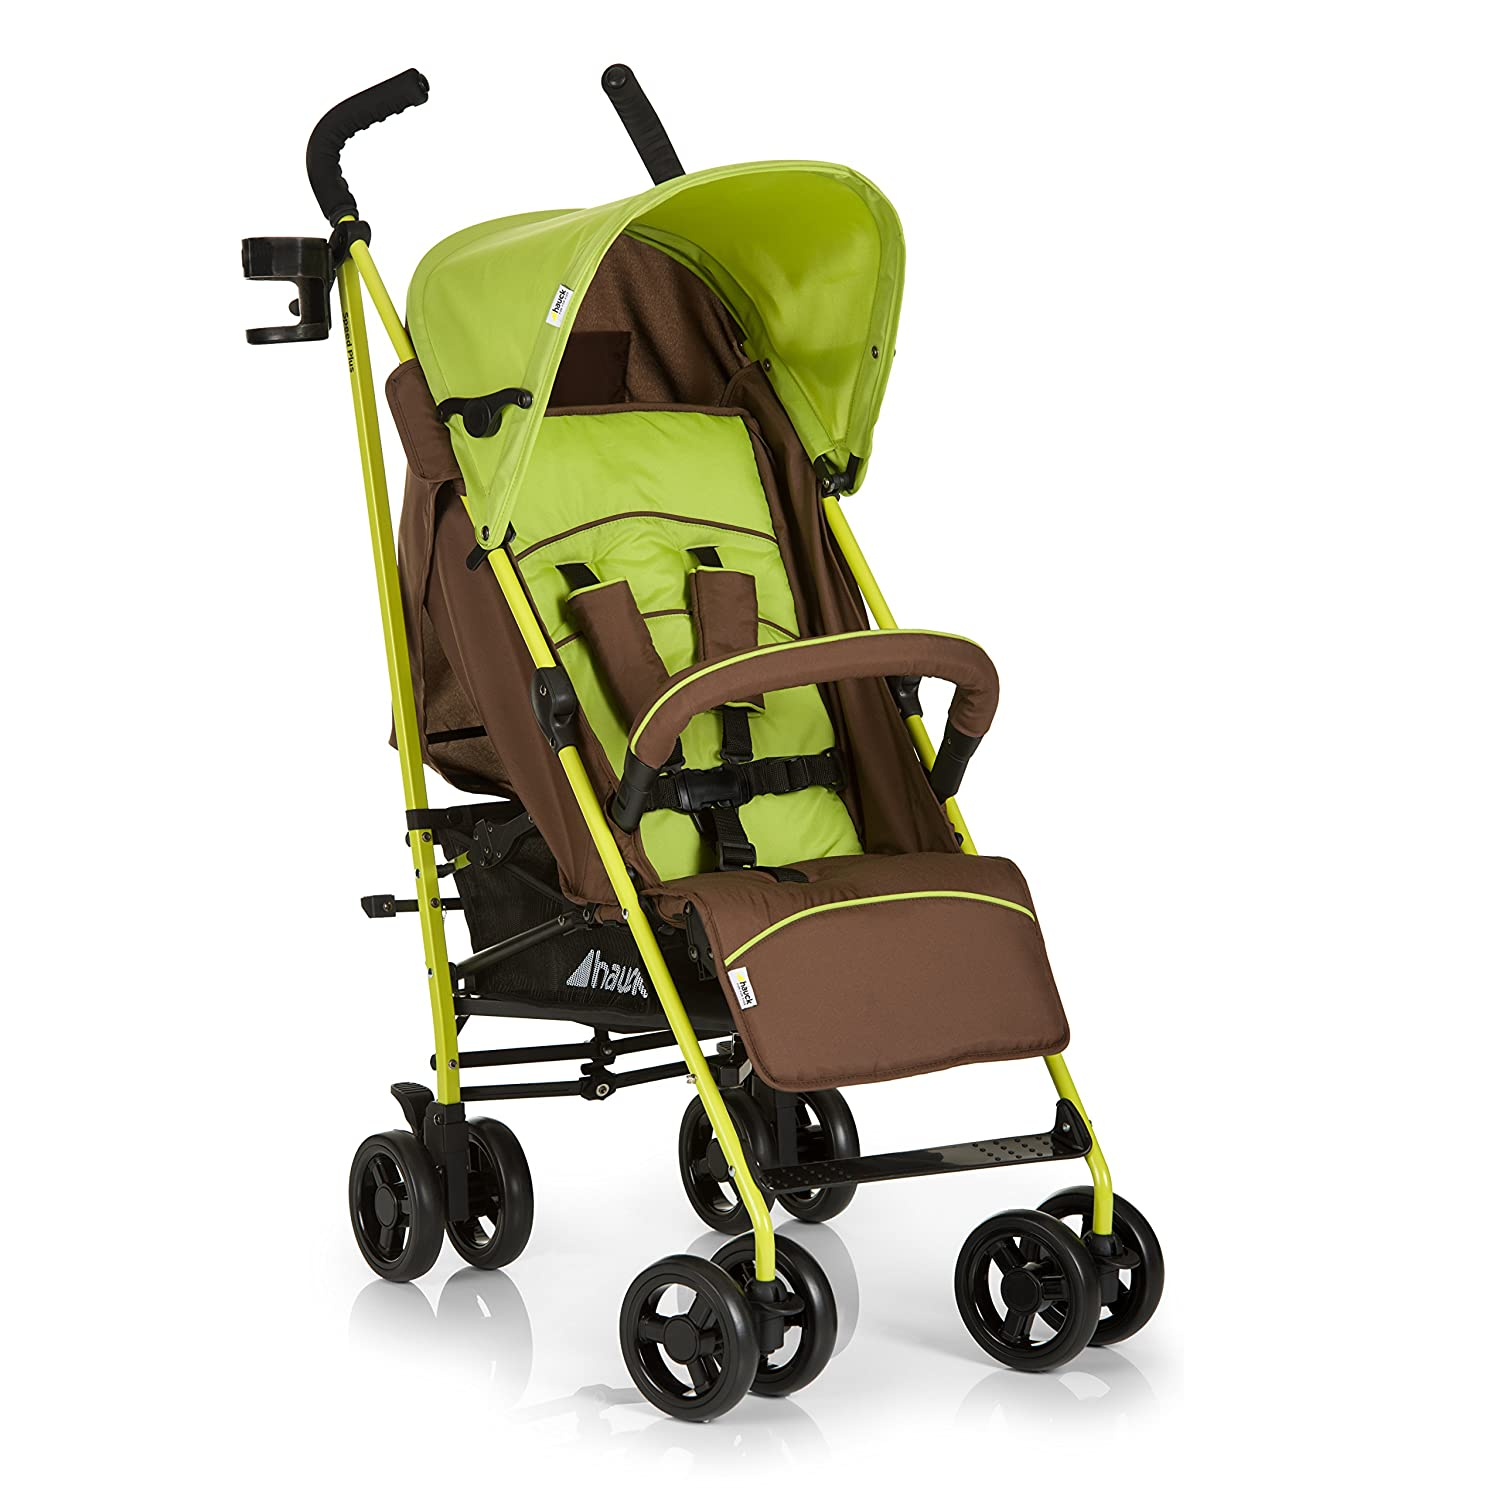 Hauck Speed Plus Four Wheel Pushchair - Brown/Green